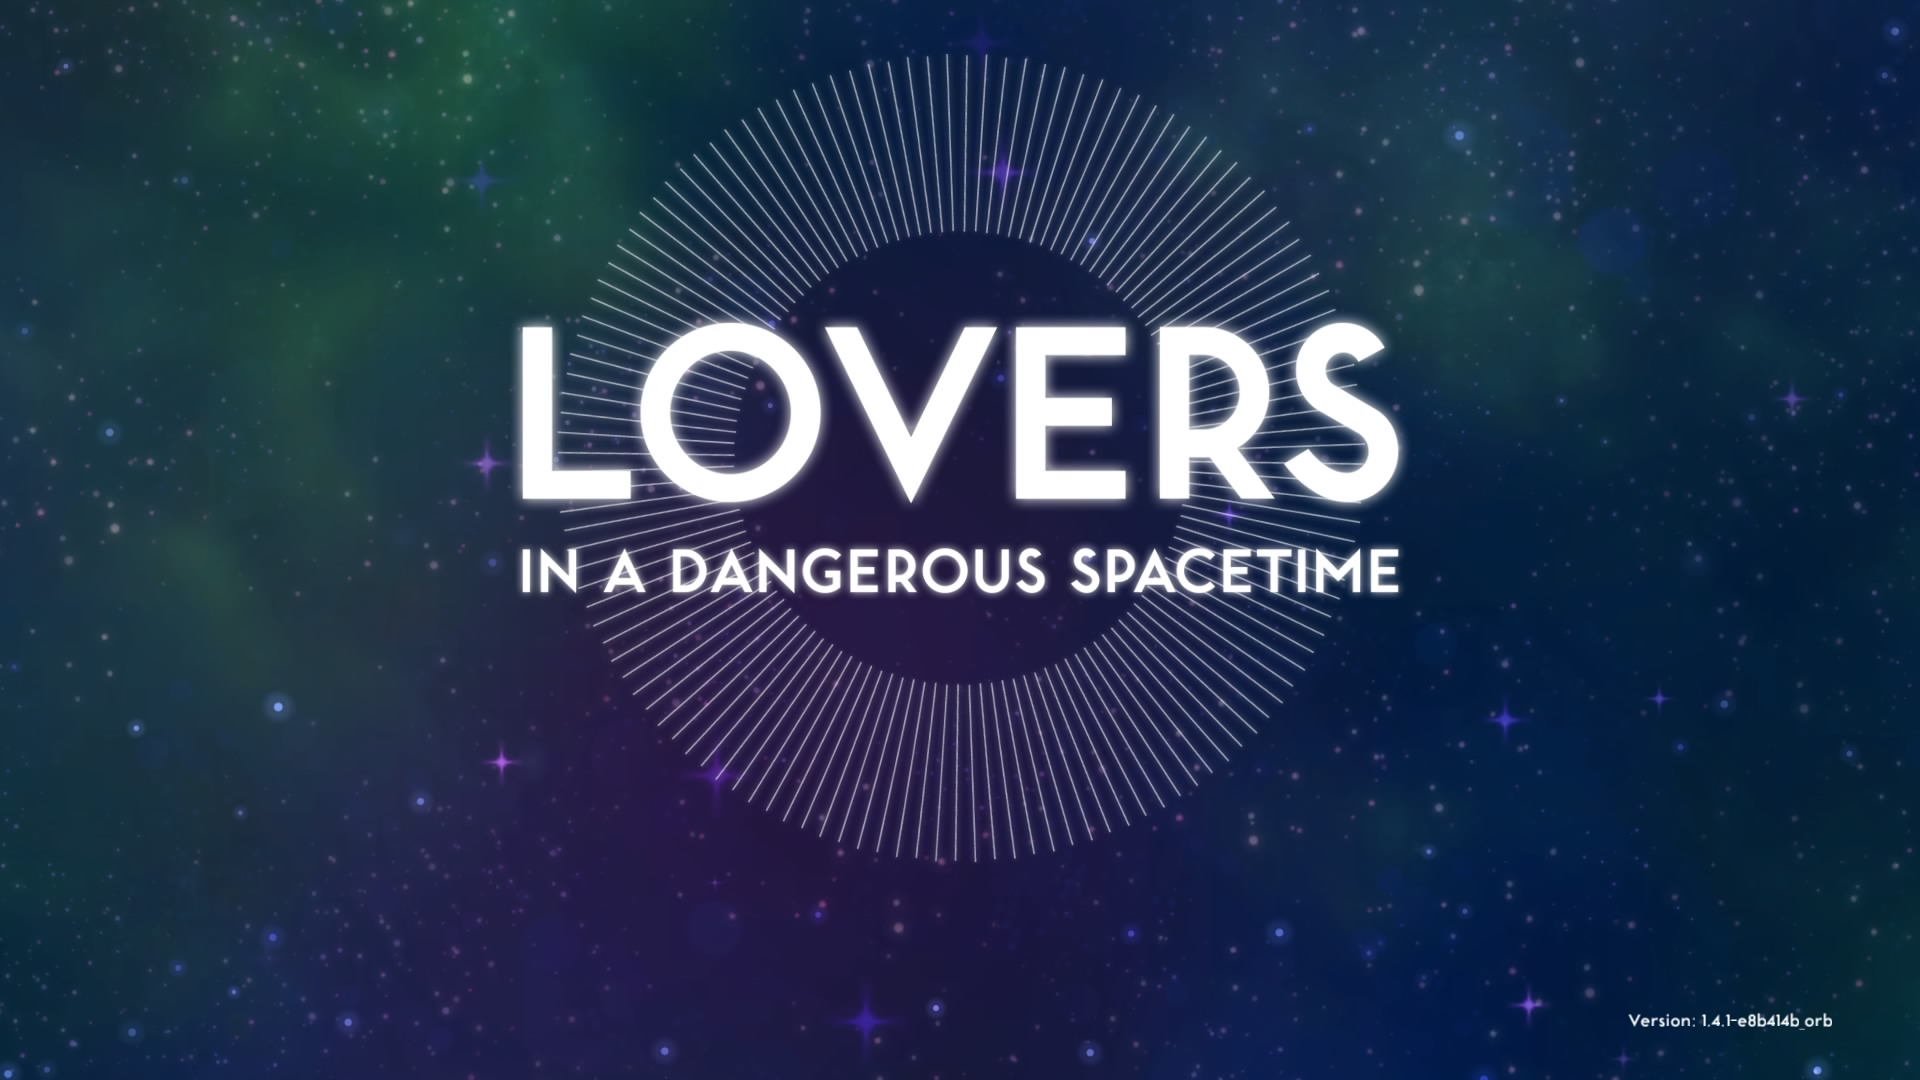 Lovers in a Dangerous Spacetime_20170727134506